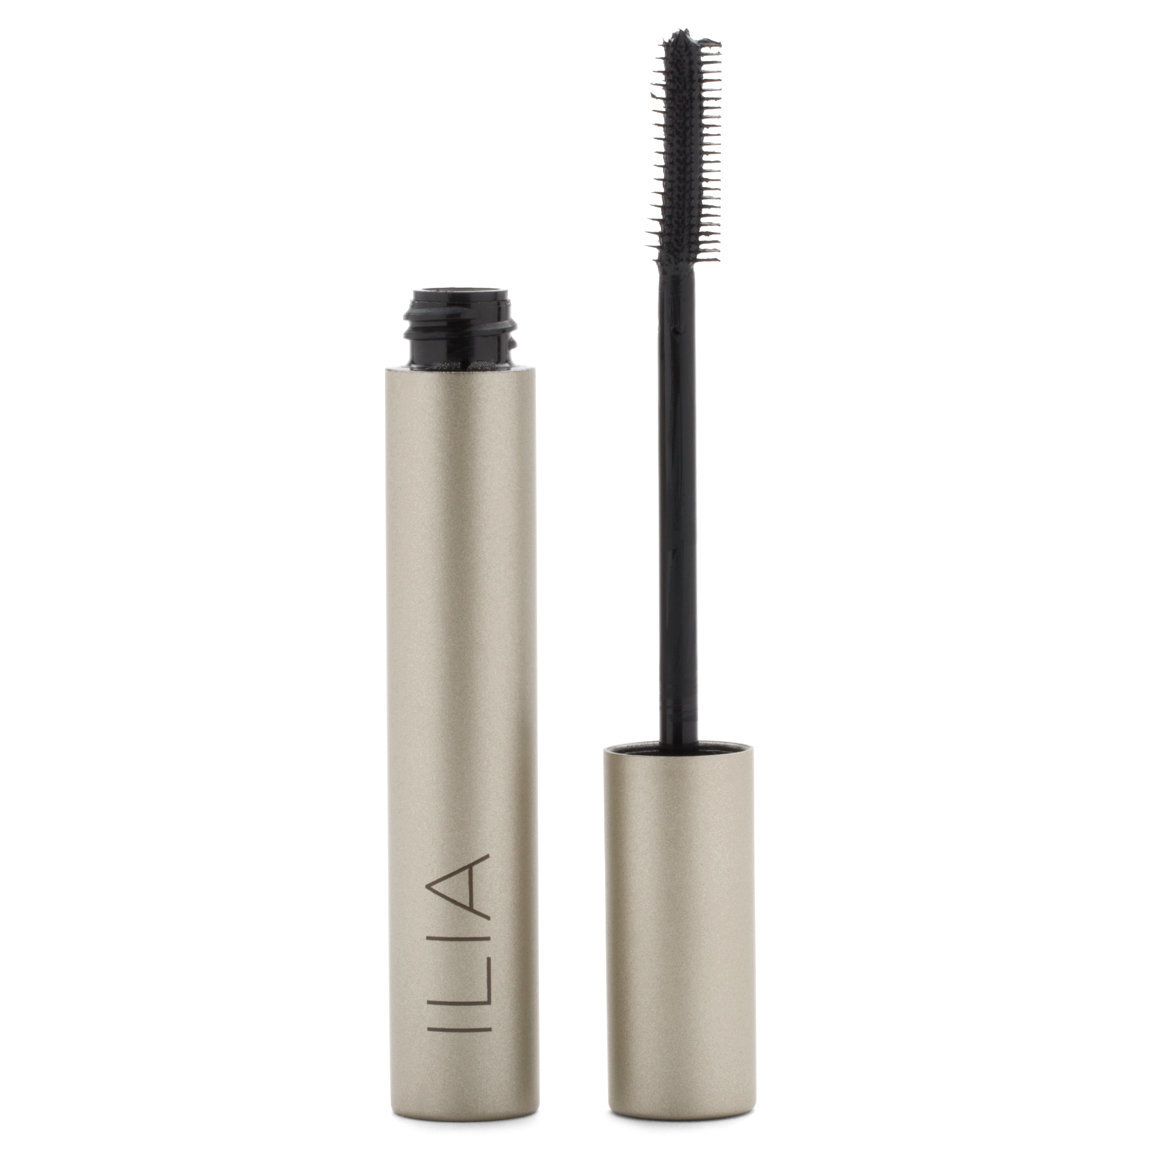 ILIA Limitless Lash Mascara product swatch.